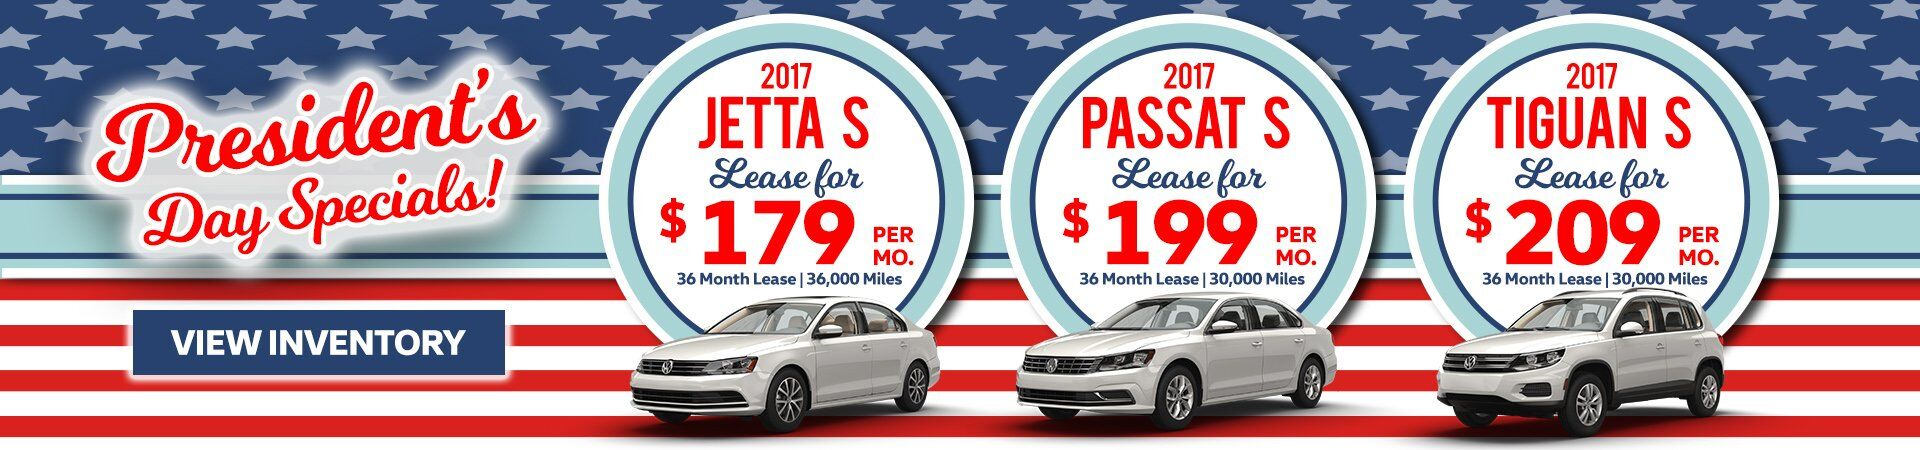 Jetta, Passat, Tiguan lease offer